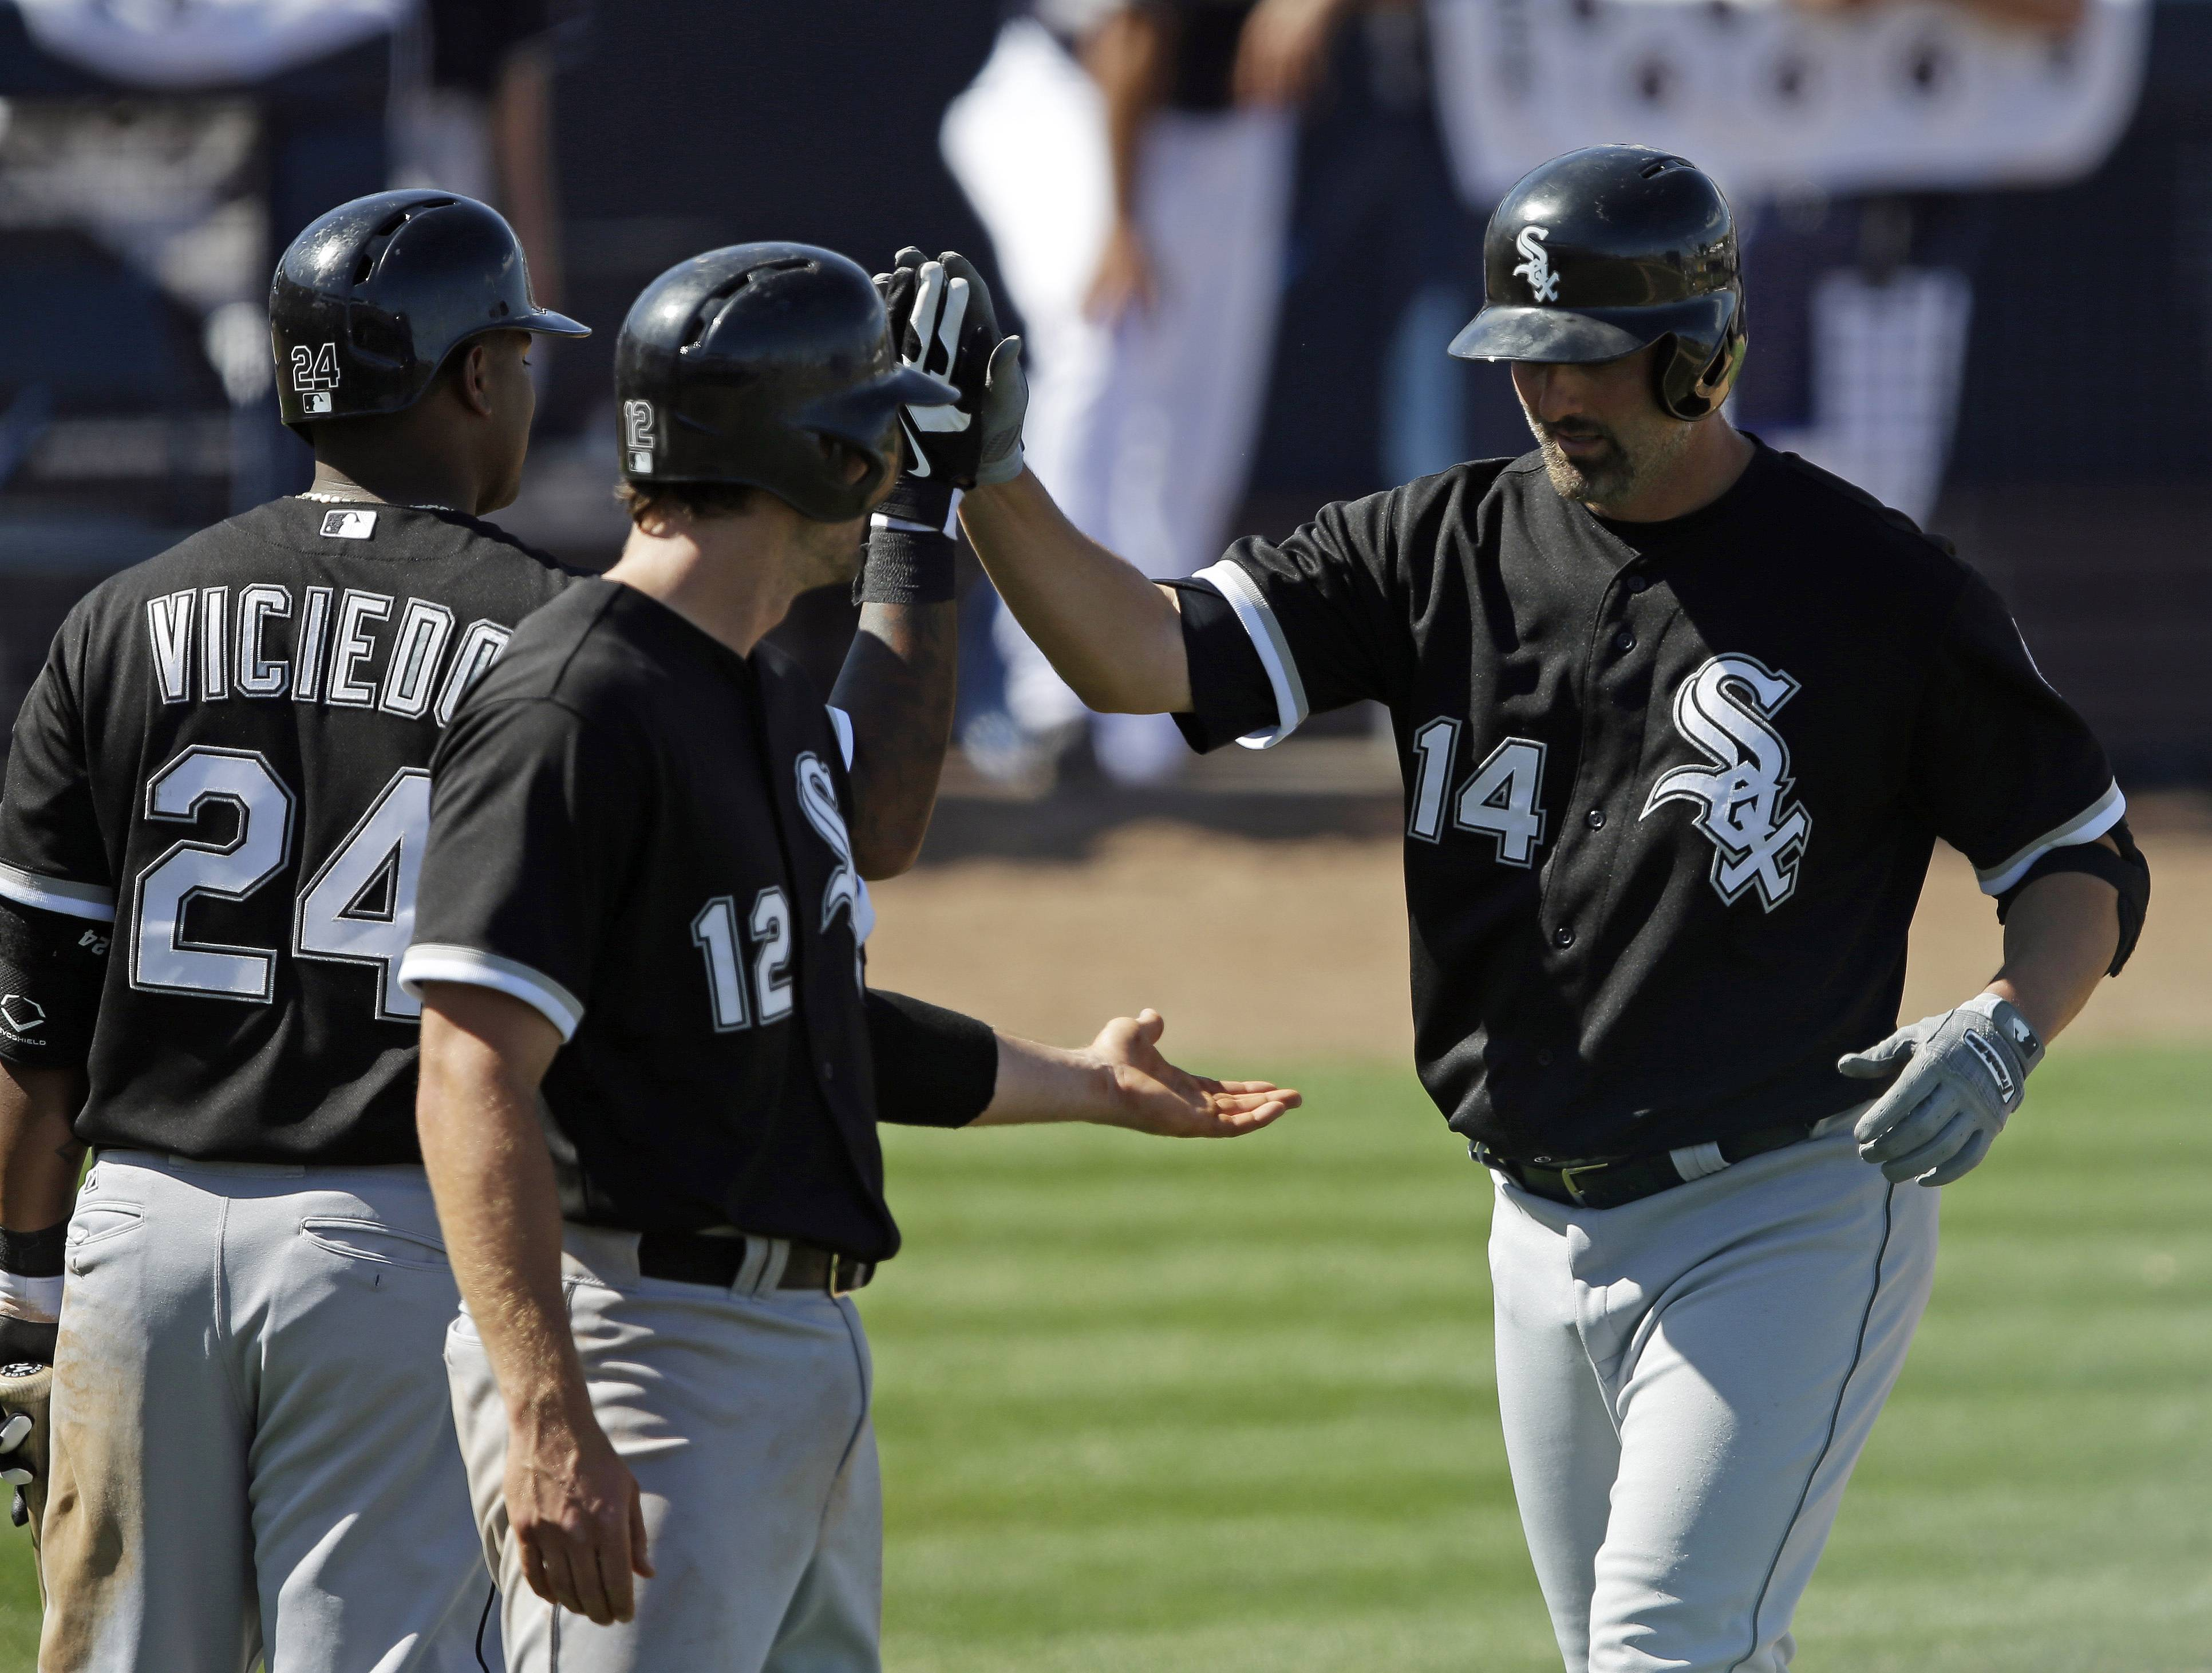 The White Sox' Paul Konerko (14) is congratulated by Conor Gillaspie (12) and Dayan Viciedo (24) after hitting a 2-run home run against the Seattle Mariners last week in Arizona.